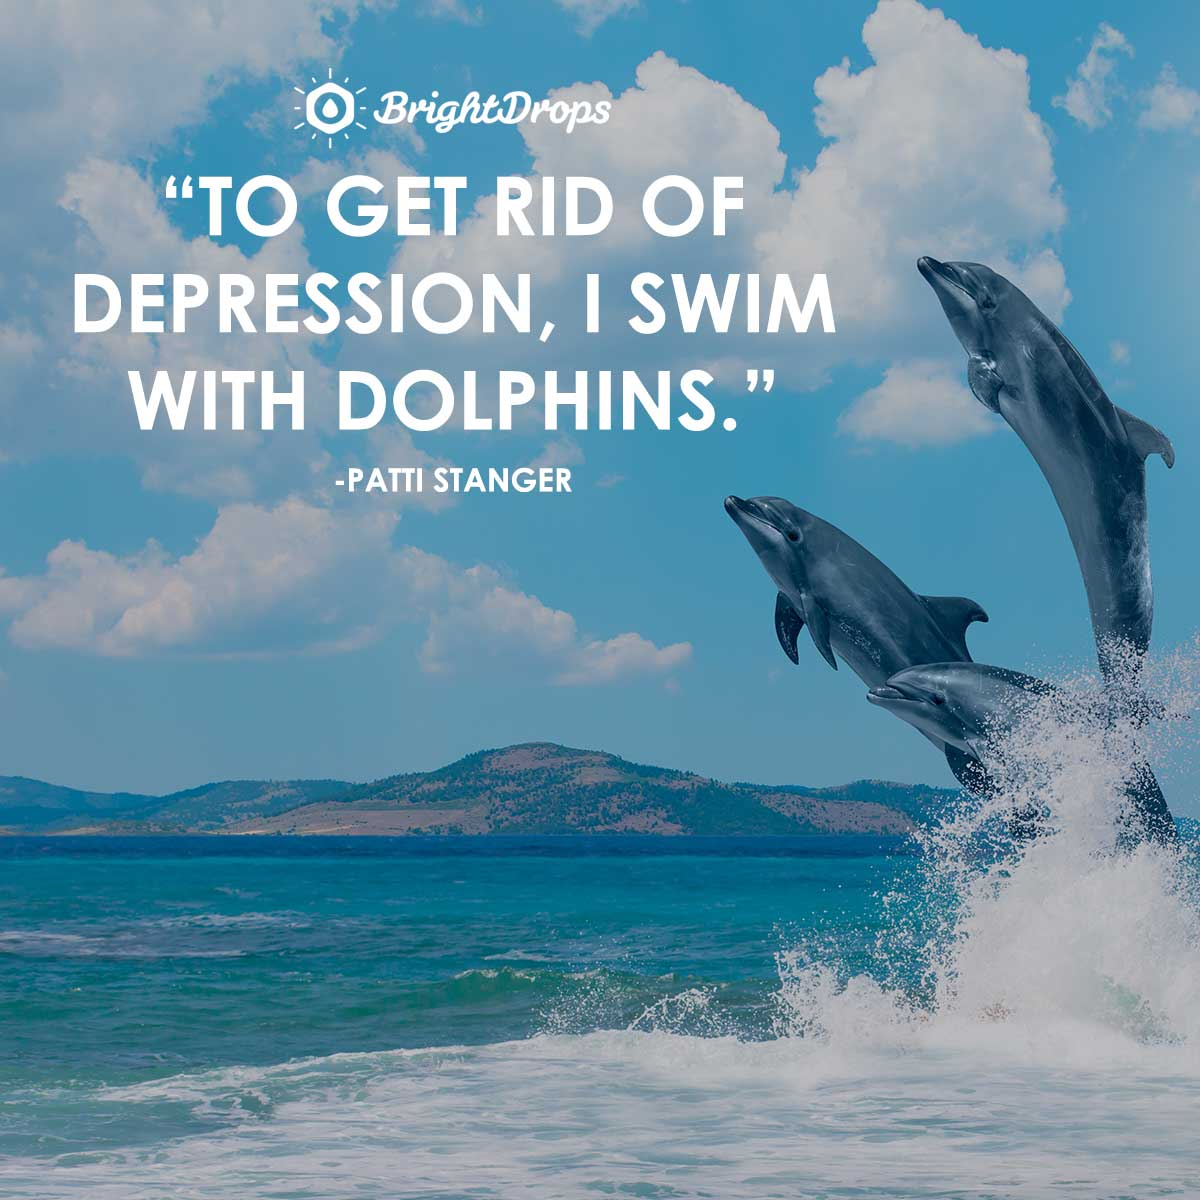 To get rid of depression, I swim with dolphins. -Patti Stanger